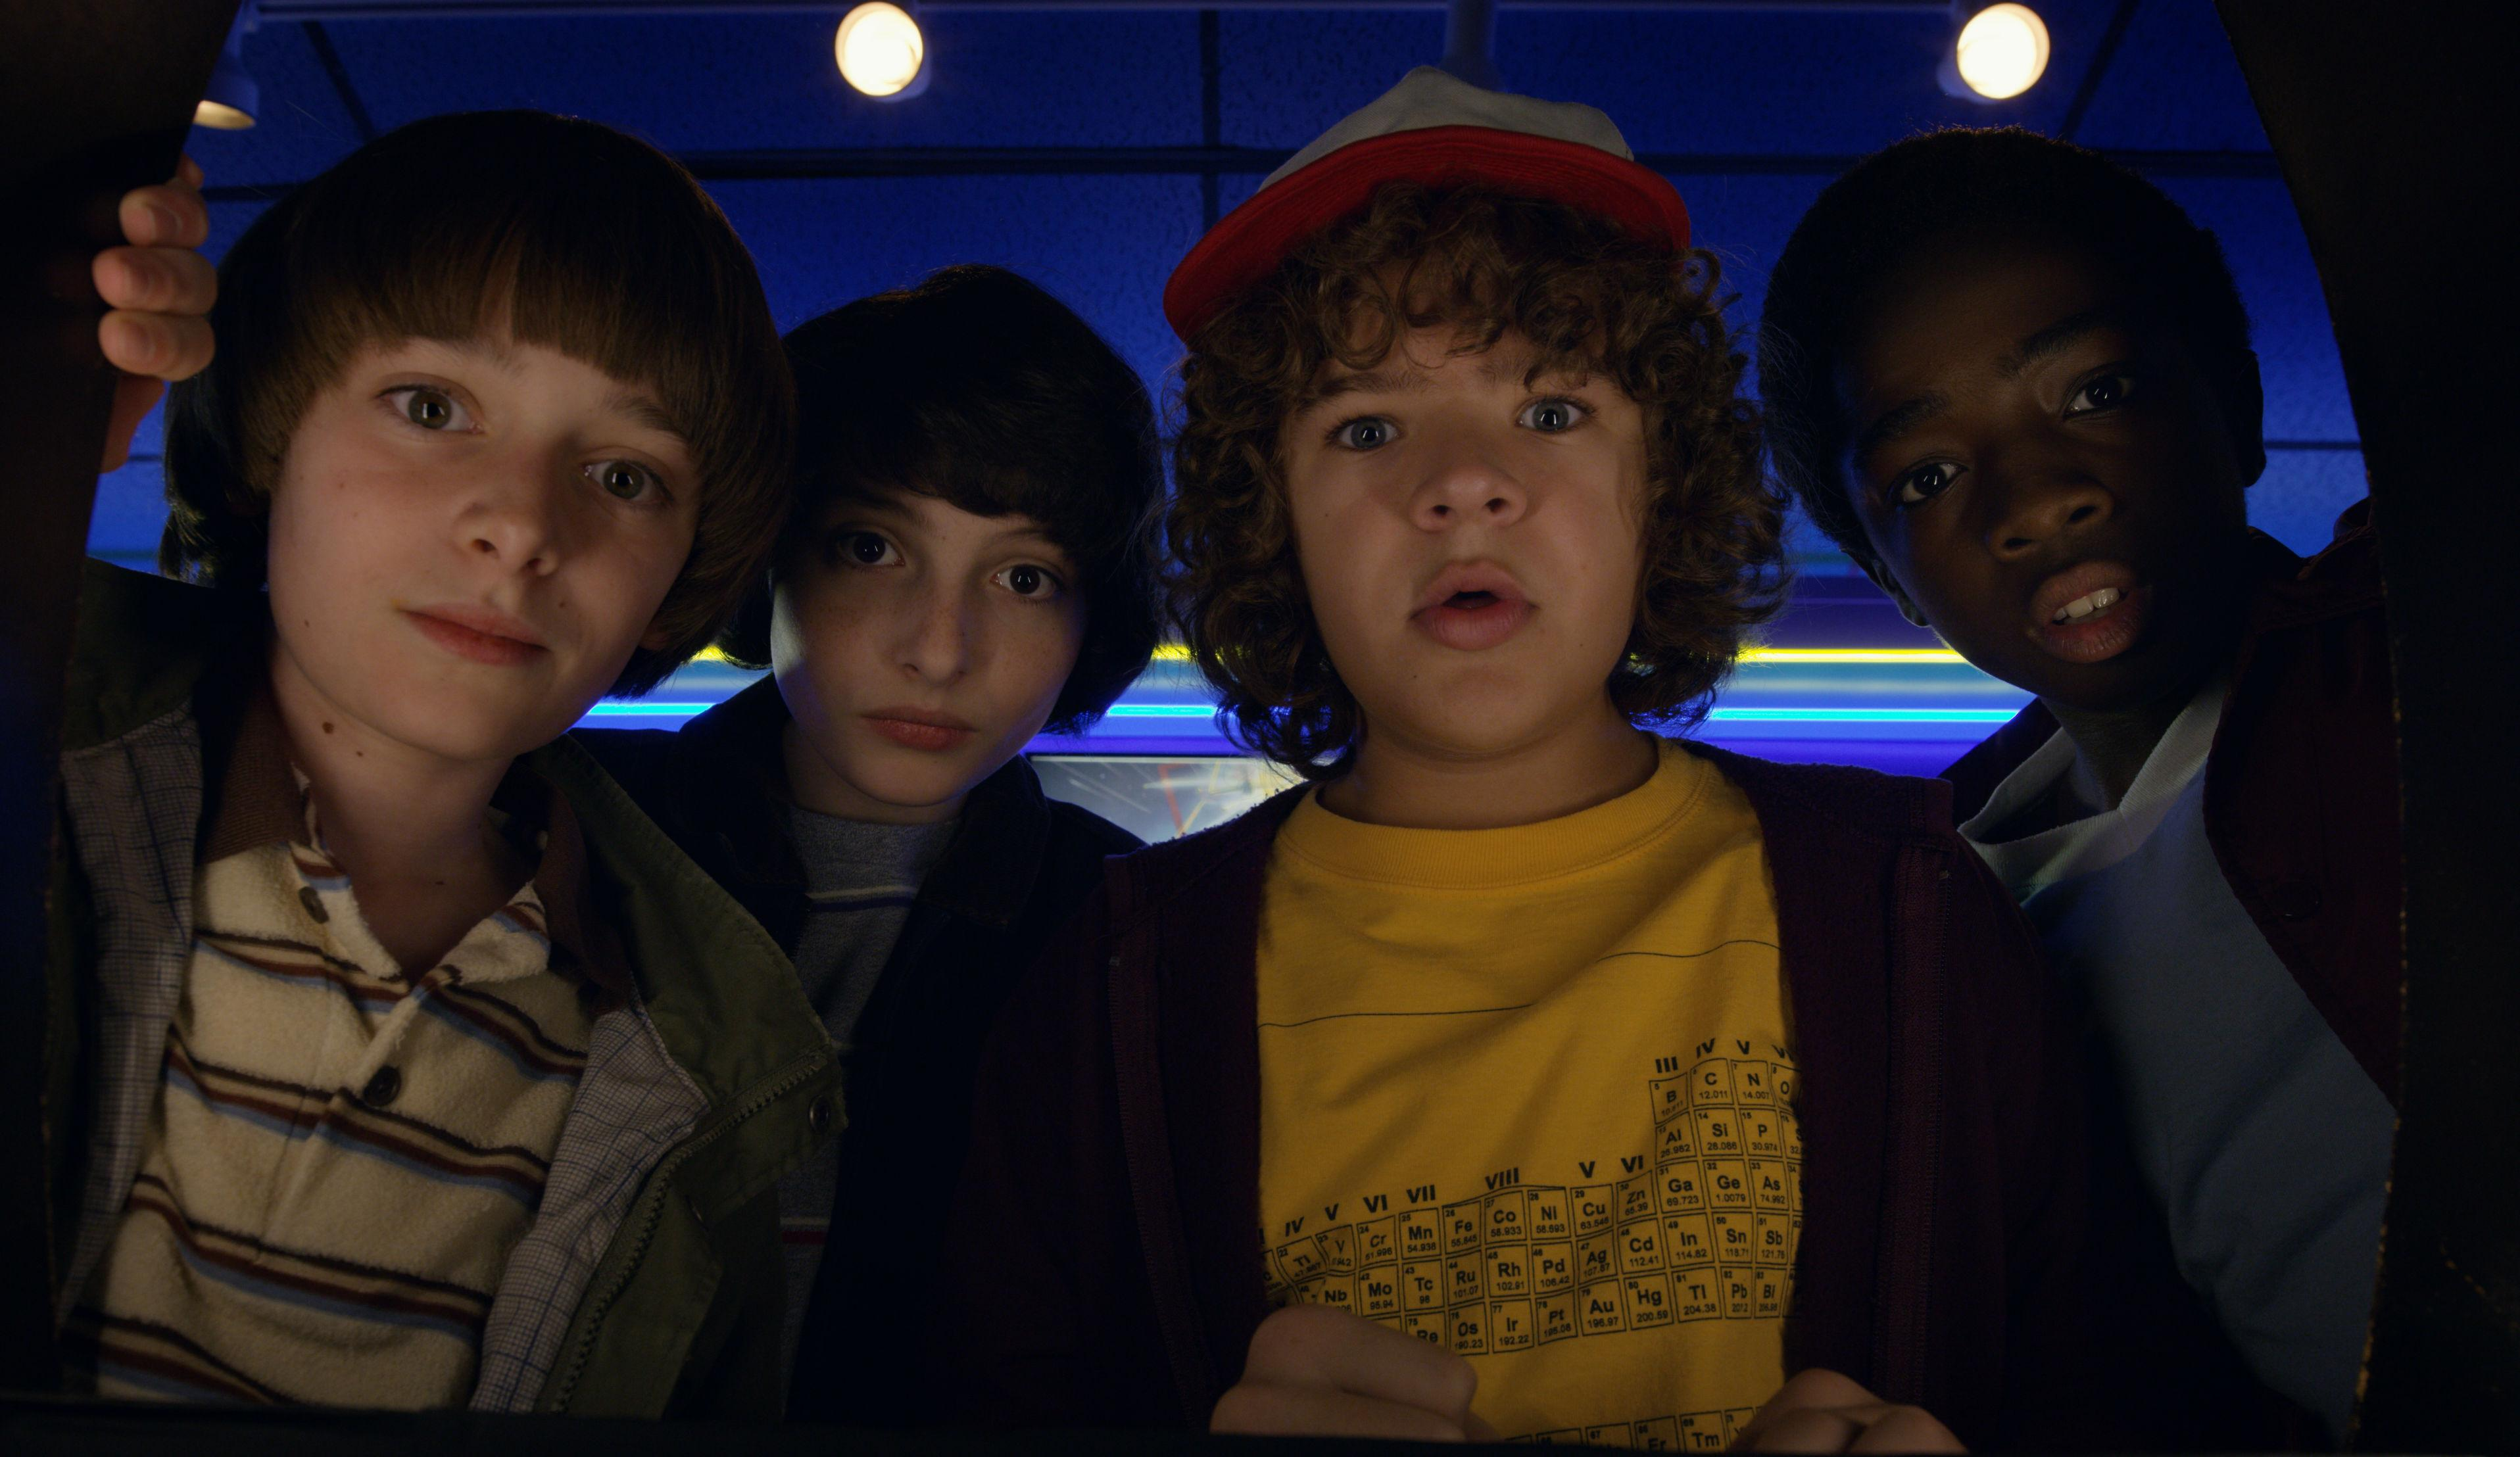 Stranger Things season 3 will feature plenty of